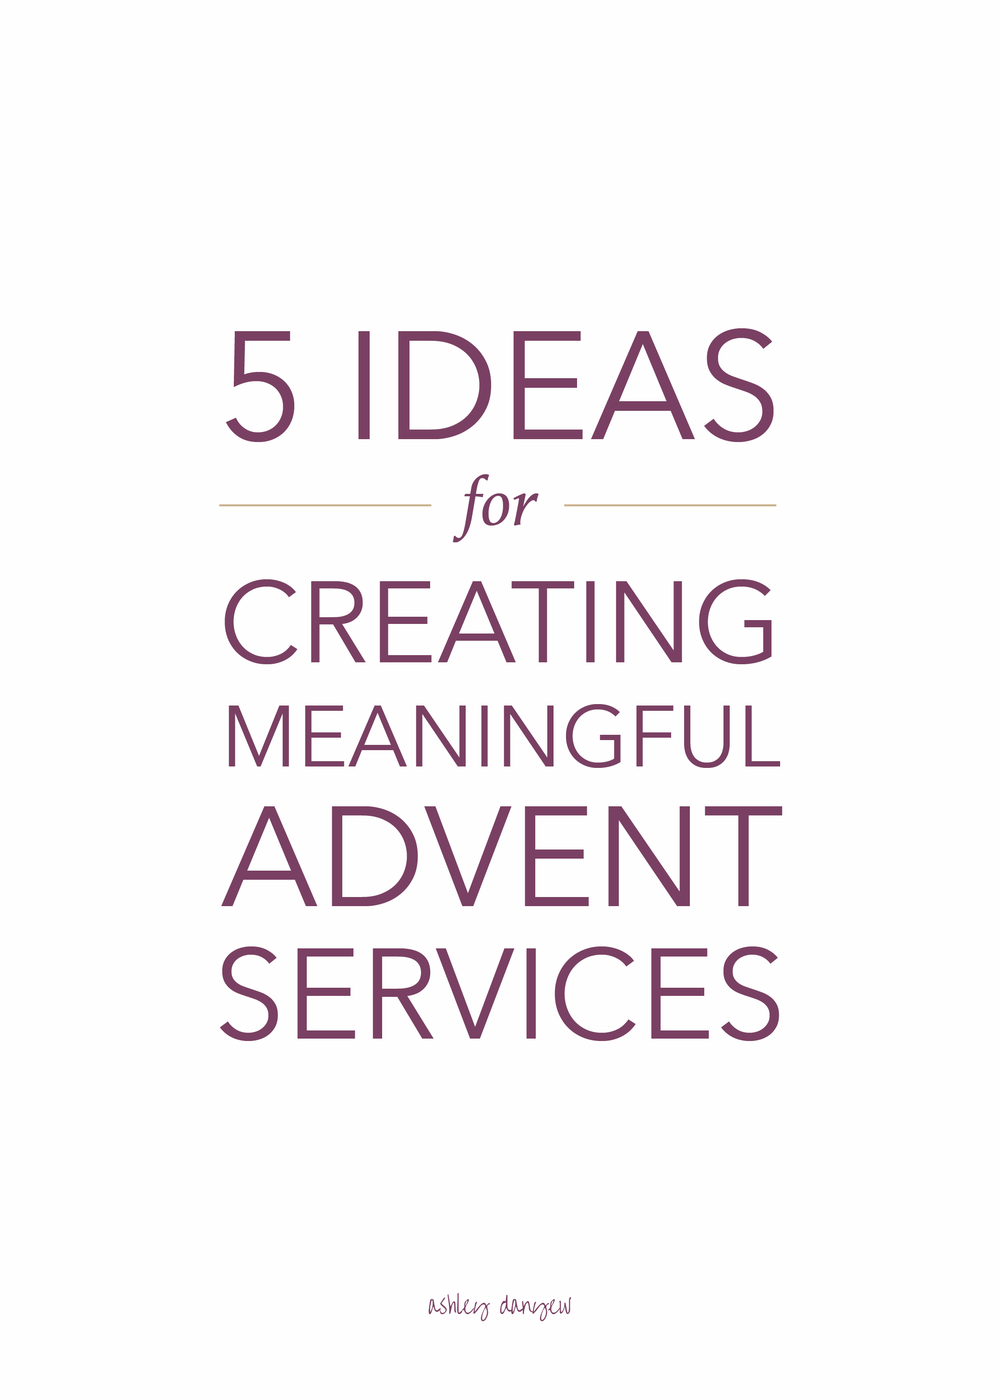 5 Ideas for Creating Meaningful Advent Services-01.png